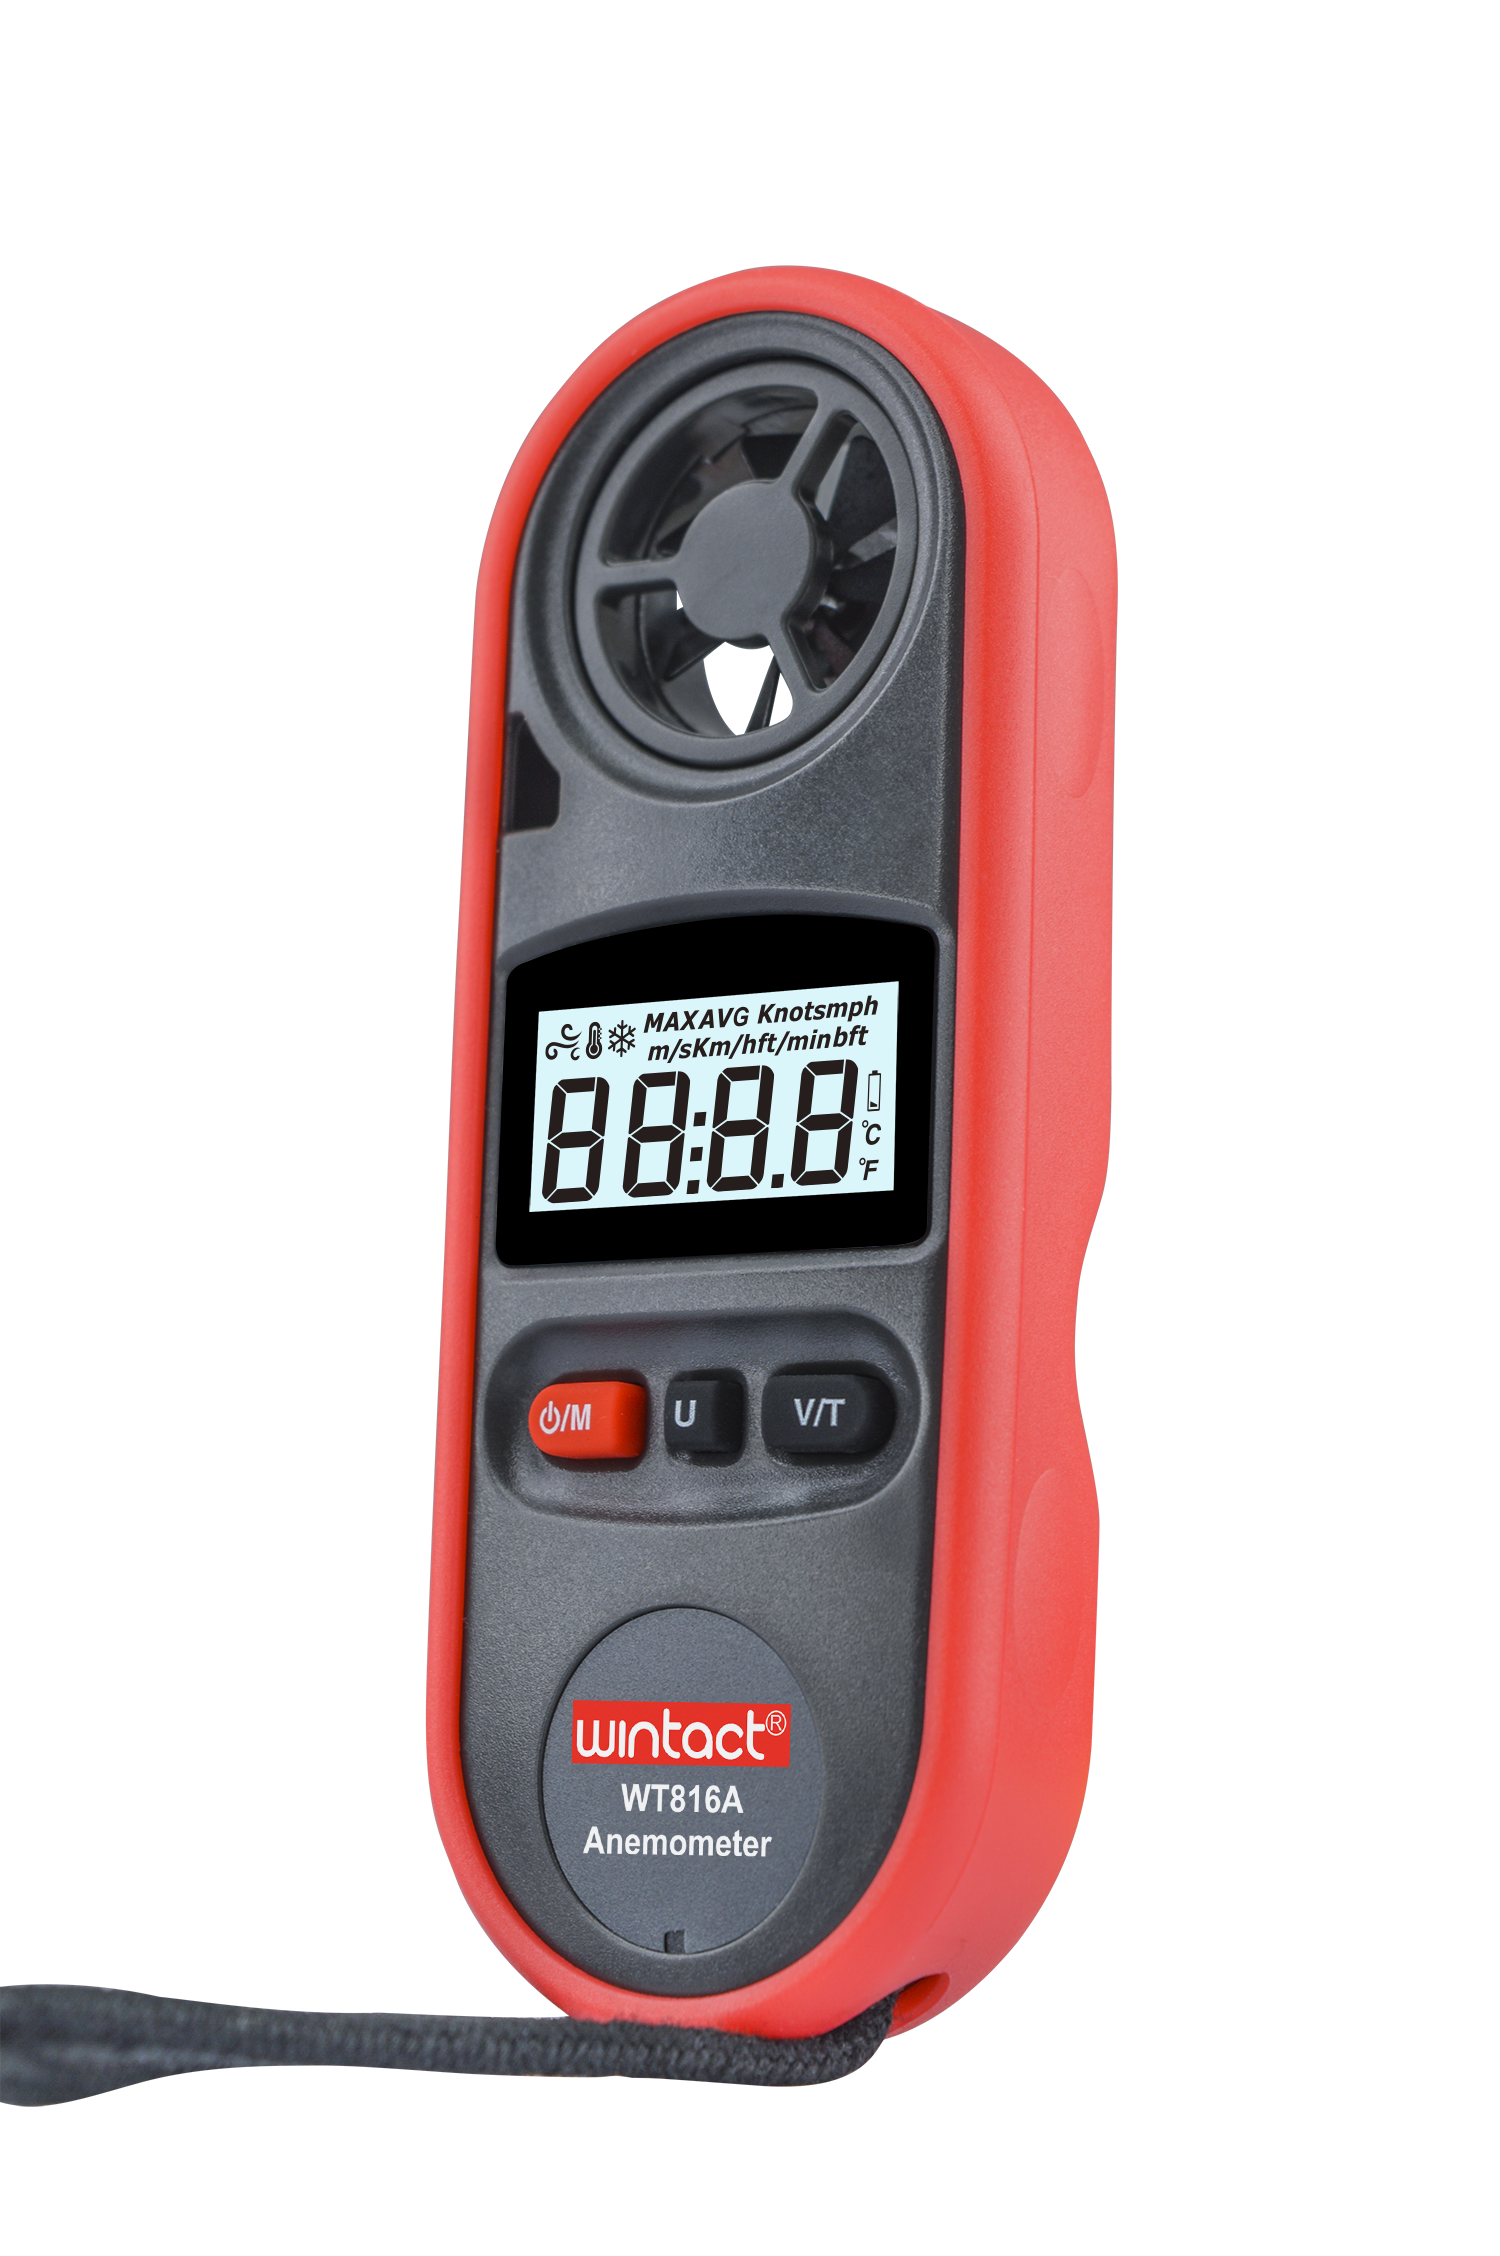 Portable RZ GM816 Wind Speed Meter Used as Anemometer with LCD Display Useful for Windsurfing 21